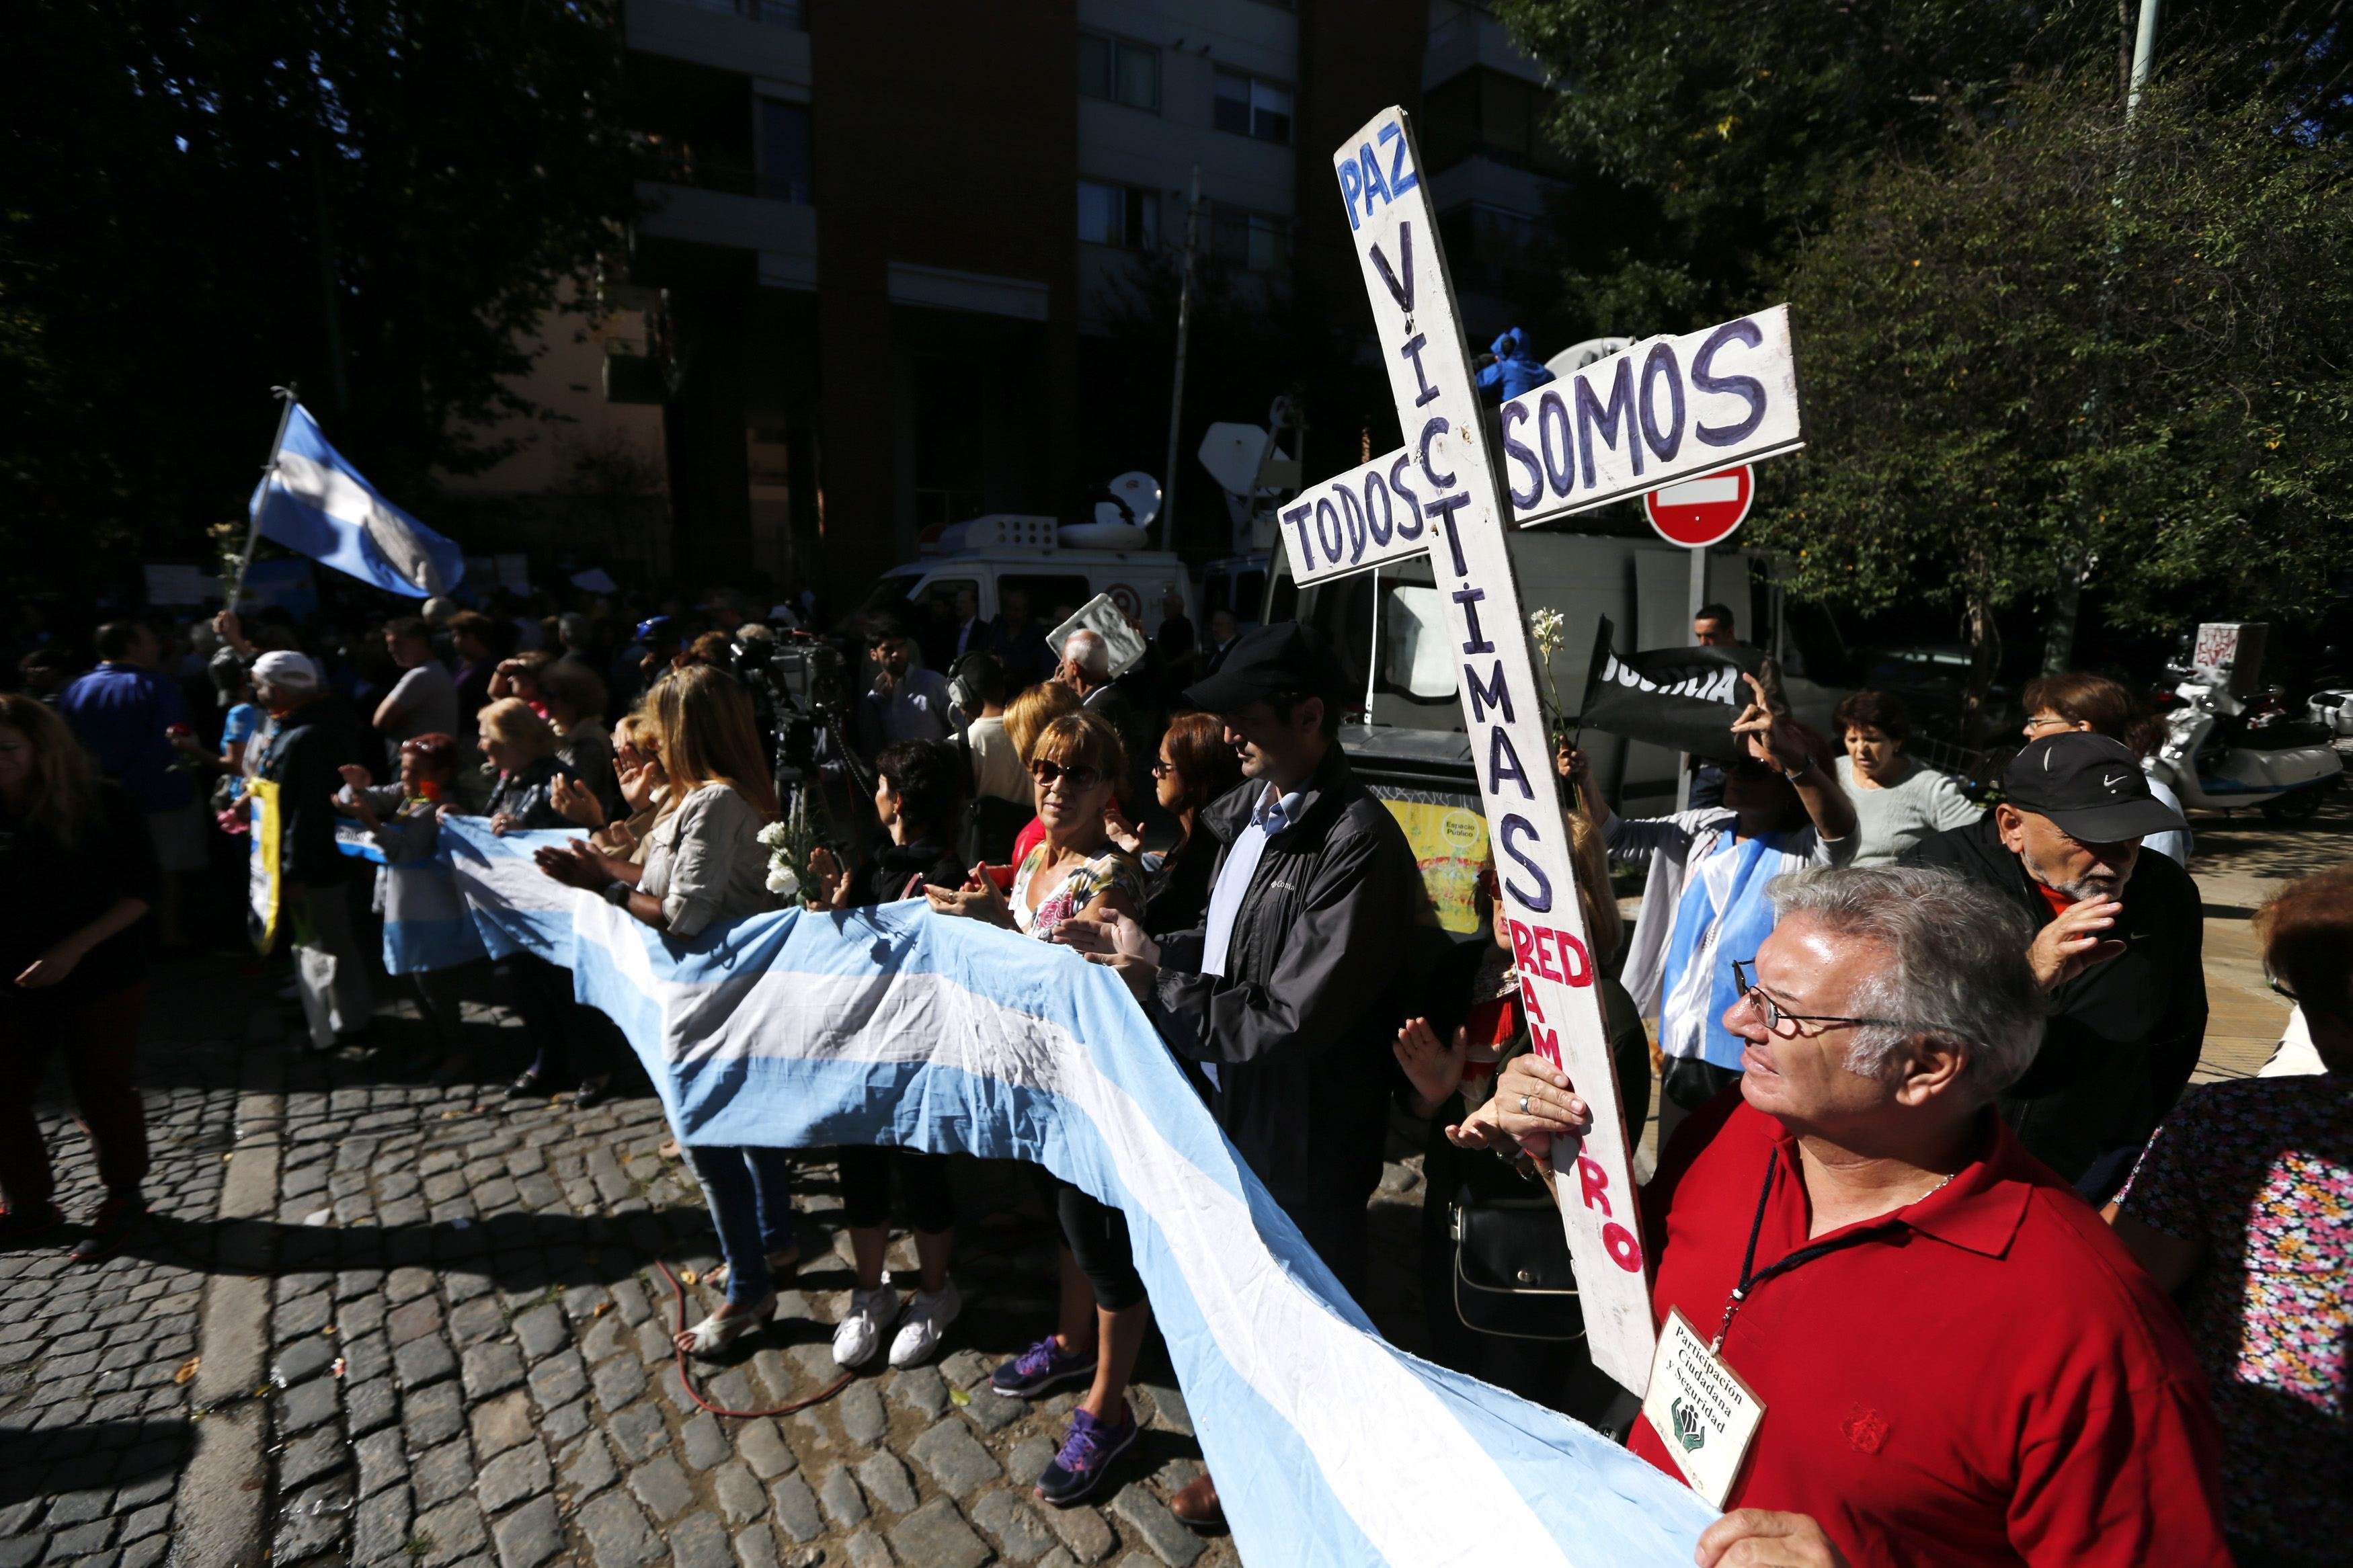 "A man holds a cross with words that read ""We are all victims"" as he waits for the hearse with the remains of late Argentine prosecutor Alberto Nisman in Buenos Aires January 29, 2015. The man who lent Argentine prosecutor Nisman the gun that killed him the day before he was to testify in Congress about allegations against the president emerged from hiding on Wednesday, saying the investigator feared for his family's life. Nisman's employee, Diego Lagomarsino, is the only person to be charged with any offence so far in the case of Nisman, who was investigating the 1994 bombing of Jewish community center in Buenos Aires. REUTERS/Marcos Brindicci (ARGENTINA - Tags: POLITICS CRIME LAW CIVIL UNREST OBITUARY) Foto: MARCOS BRINDICCI/REUTERS"